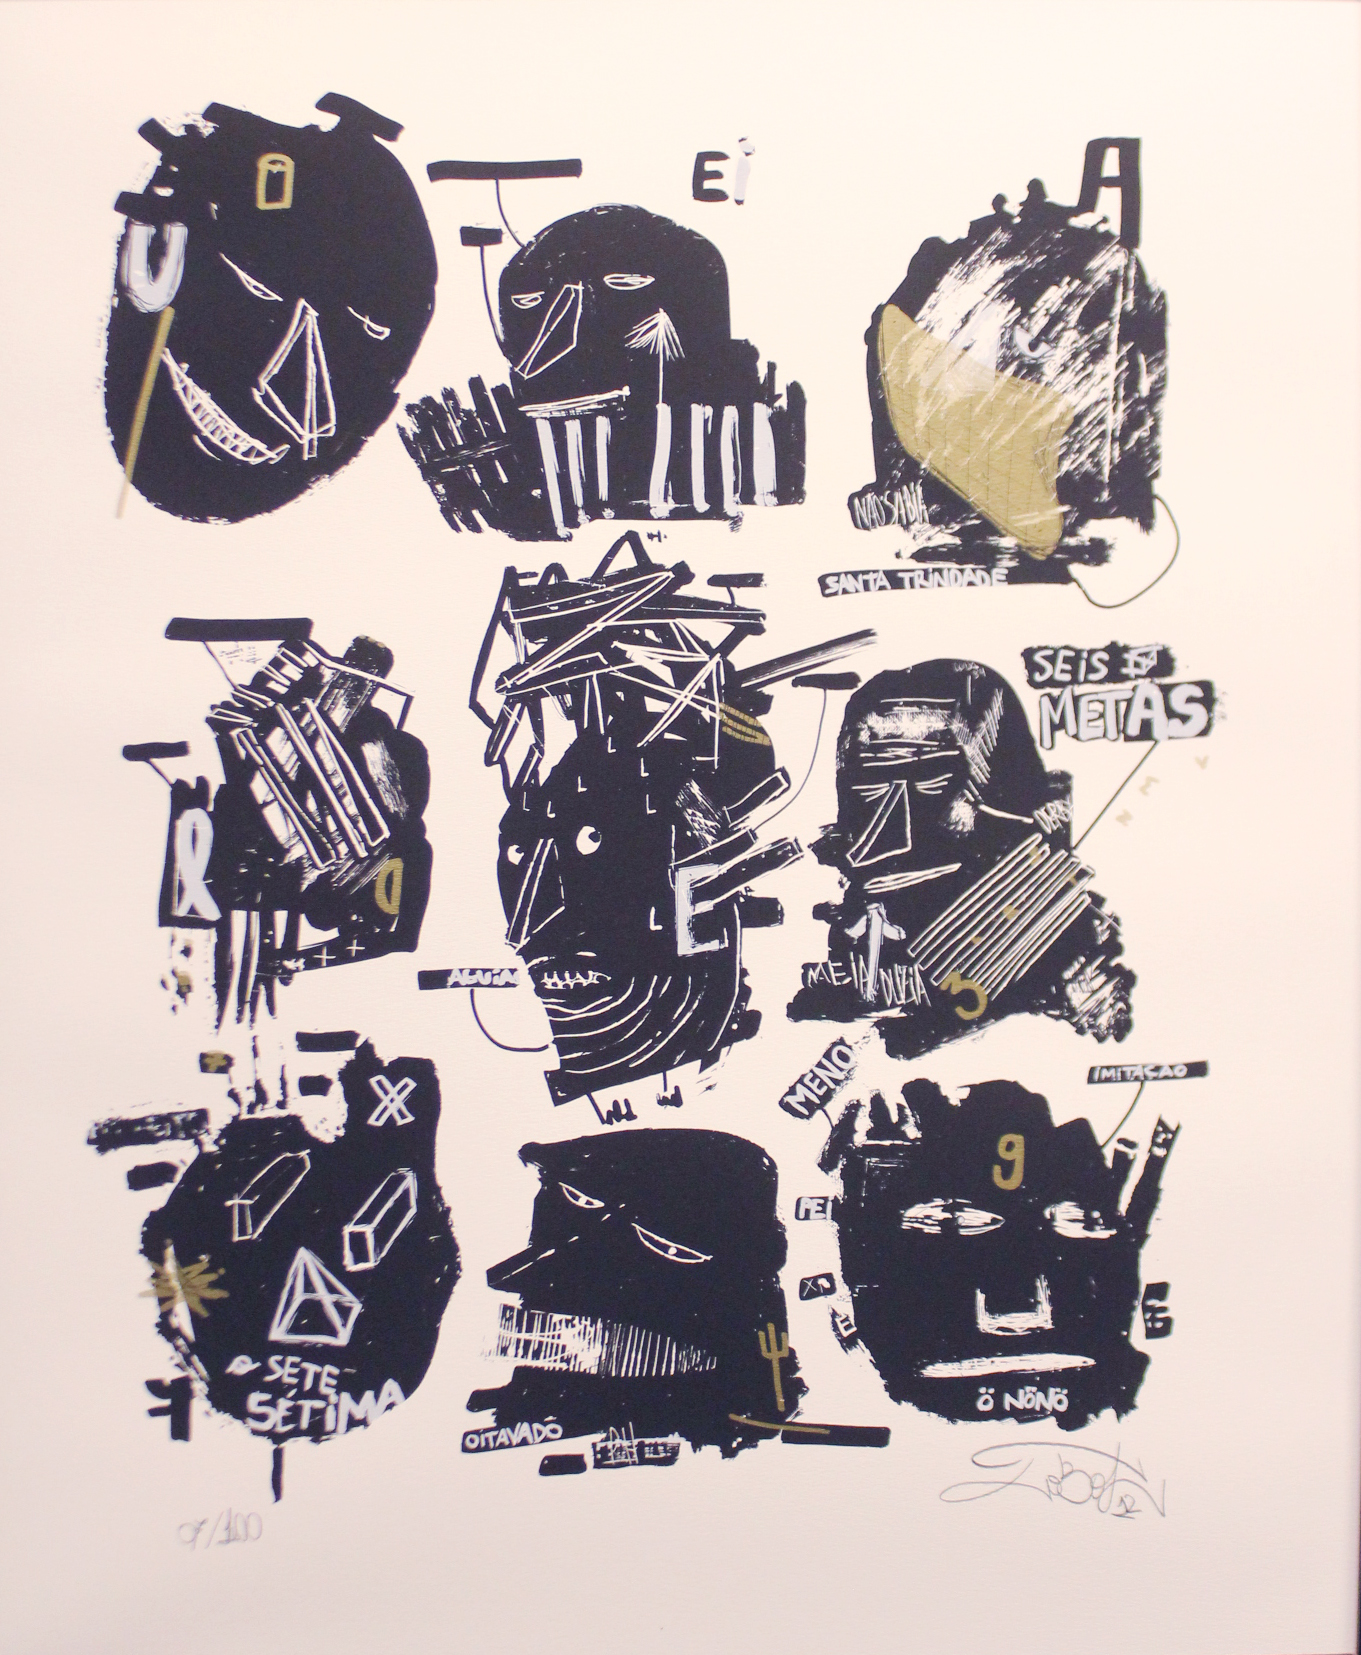 Lobot01/ serigrafia sobre papel / 47x57 / 2013 - Avaliable